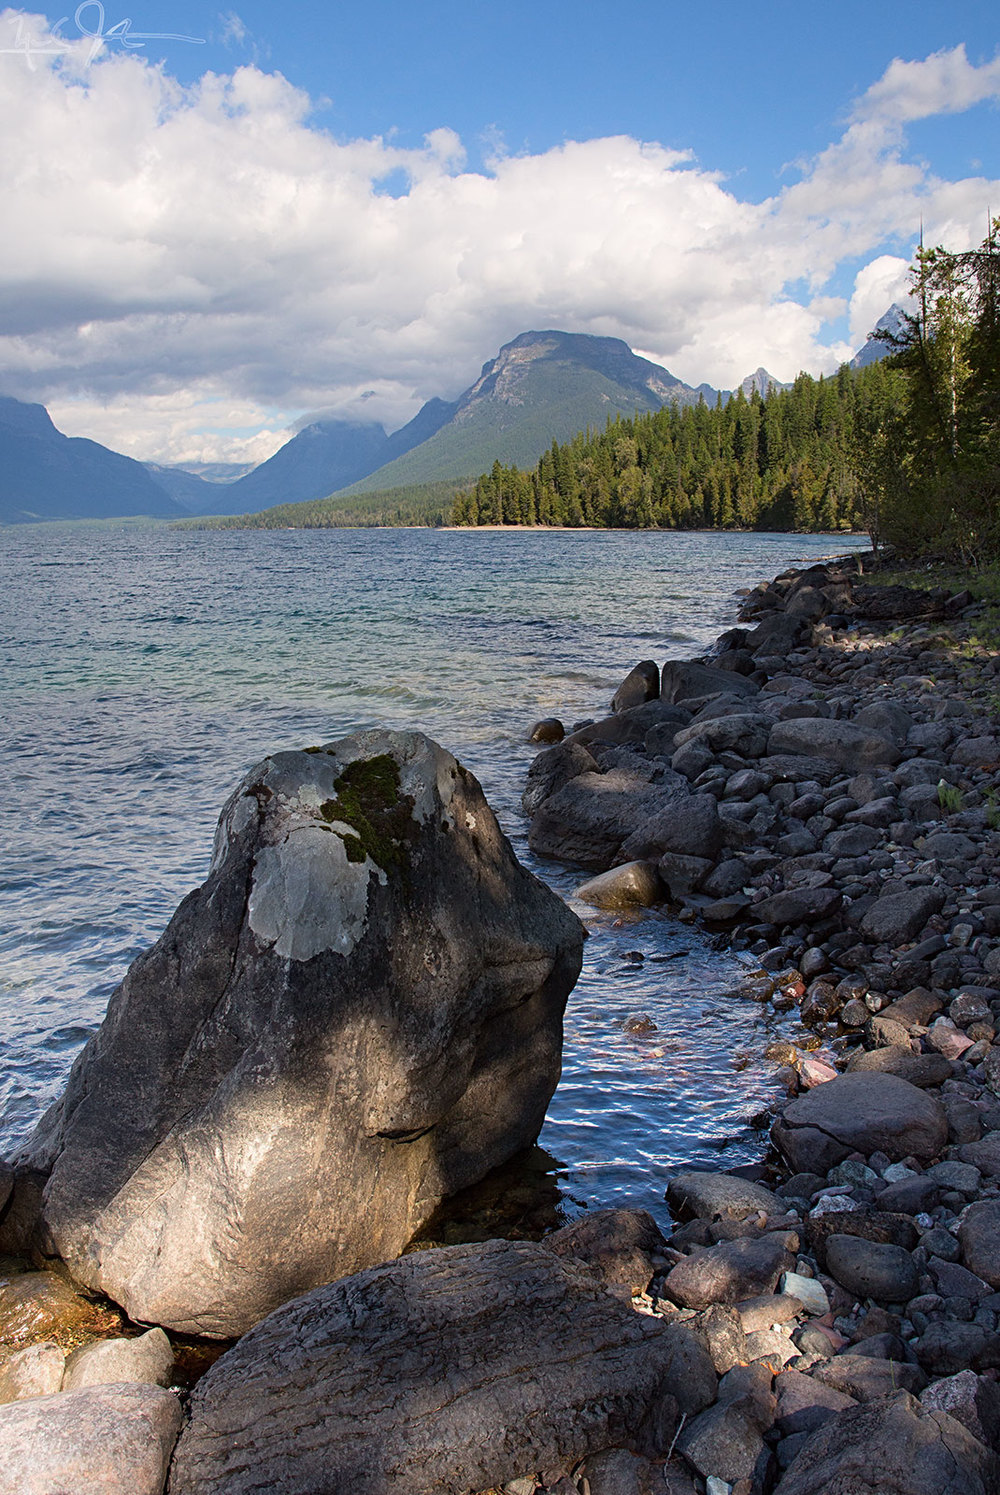 Along the shore of Lake McDonald, Glacier National Park.